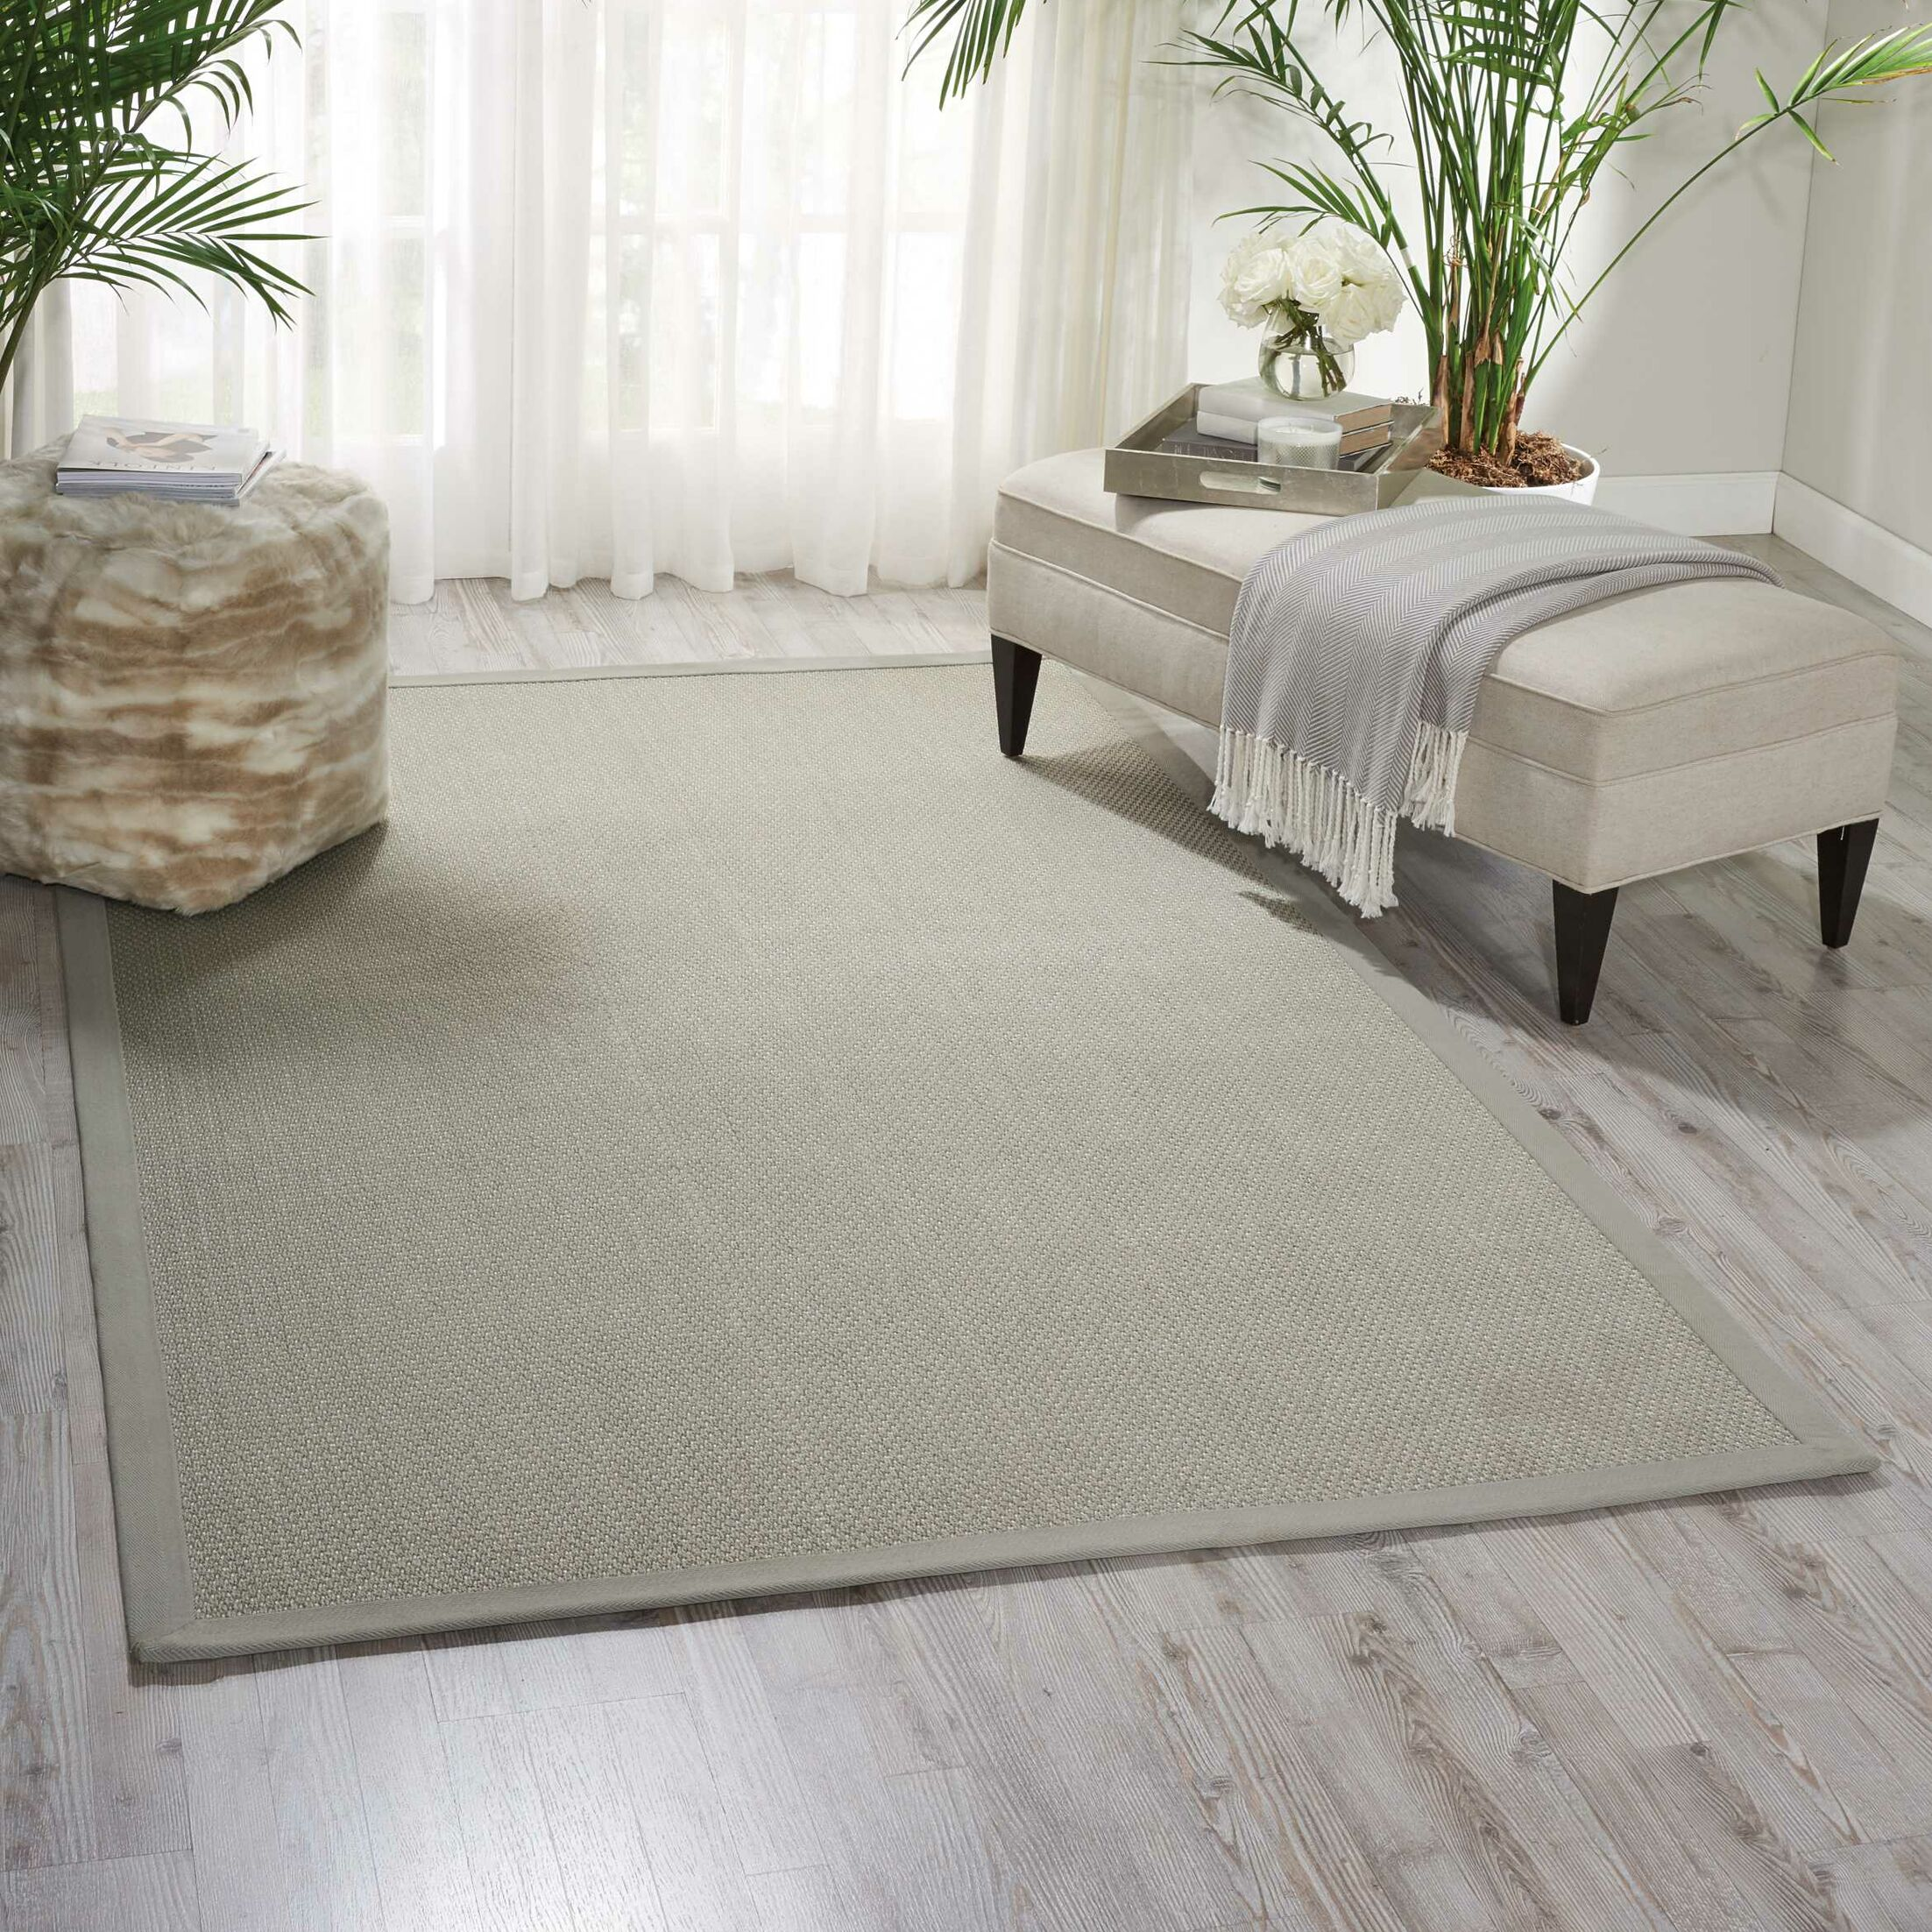 Seacor Gray Indoor/Outdoor Area Rug Rug Size: Rectangle 3' x 7'6